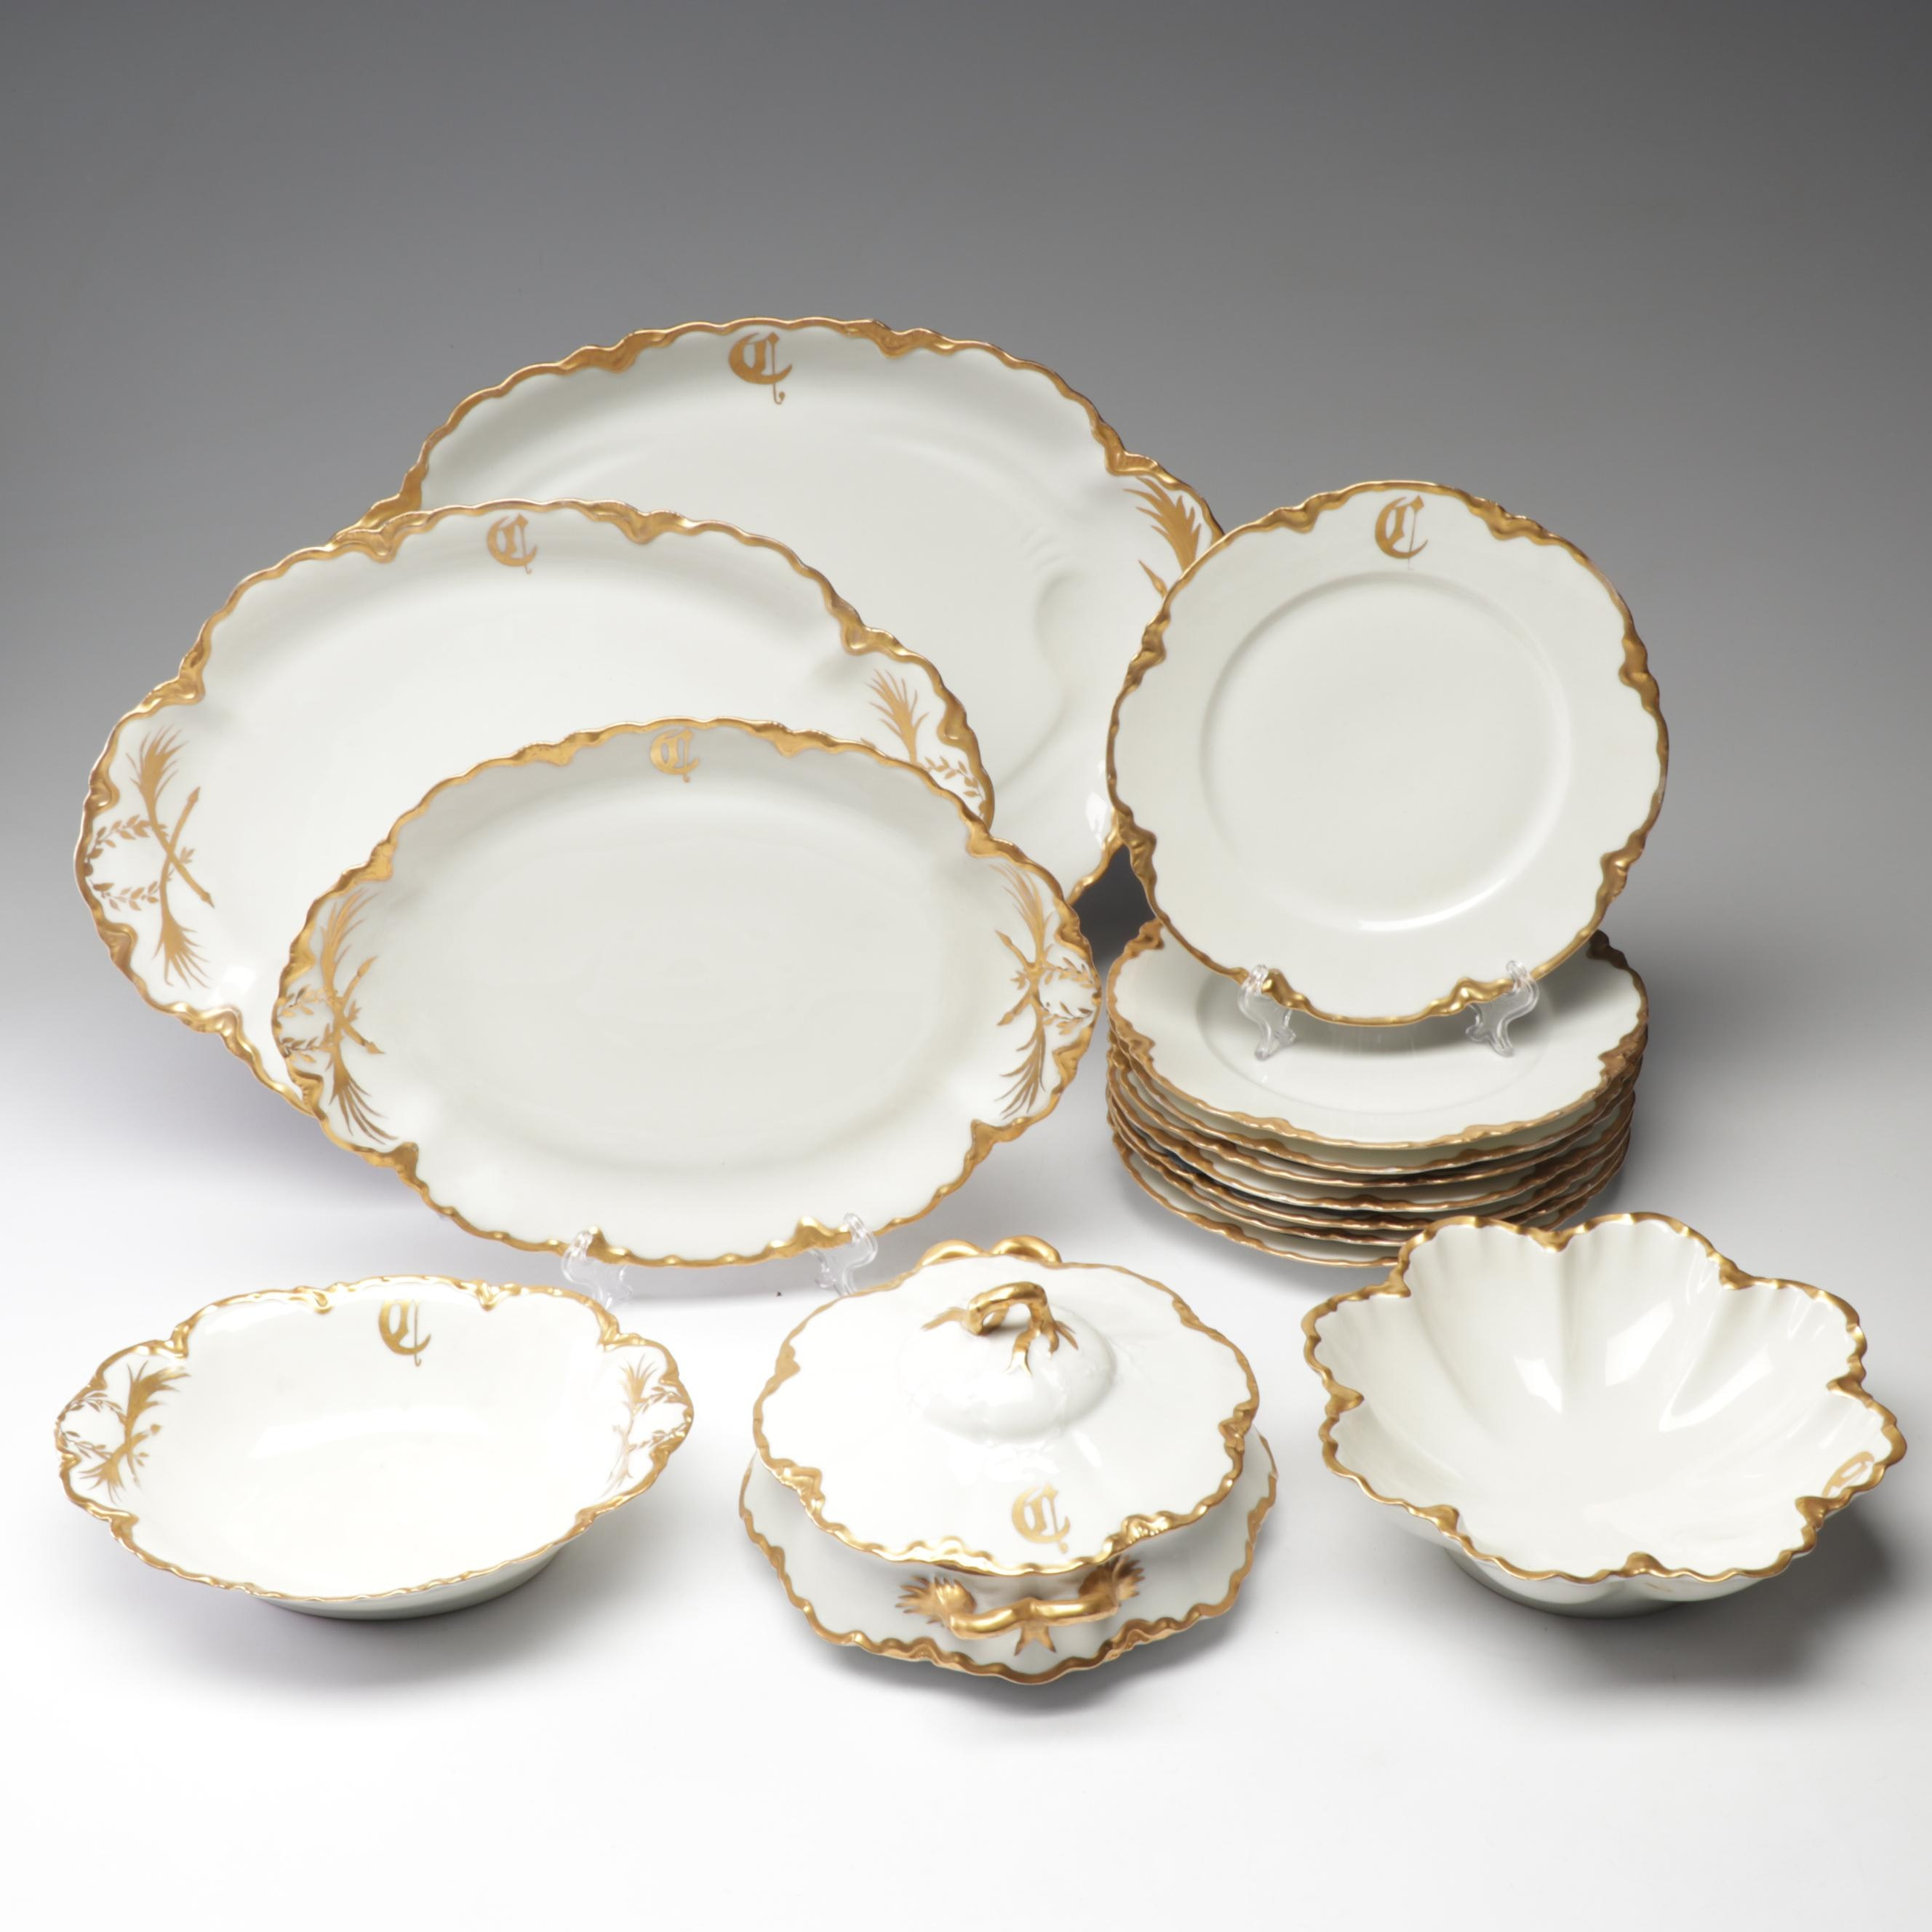 "Haviland ""Schleiger"" Porcelain Tableware, Late 19th - Early 20th Century"